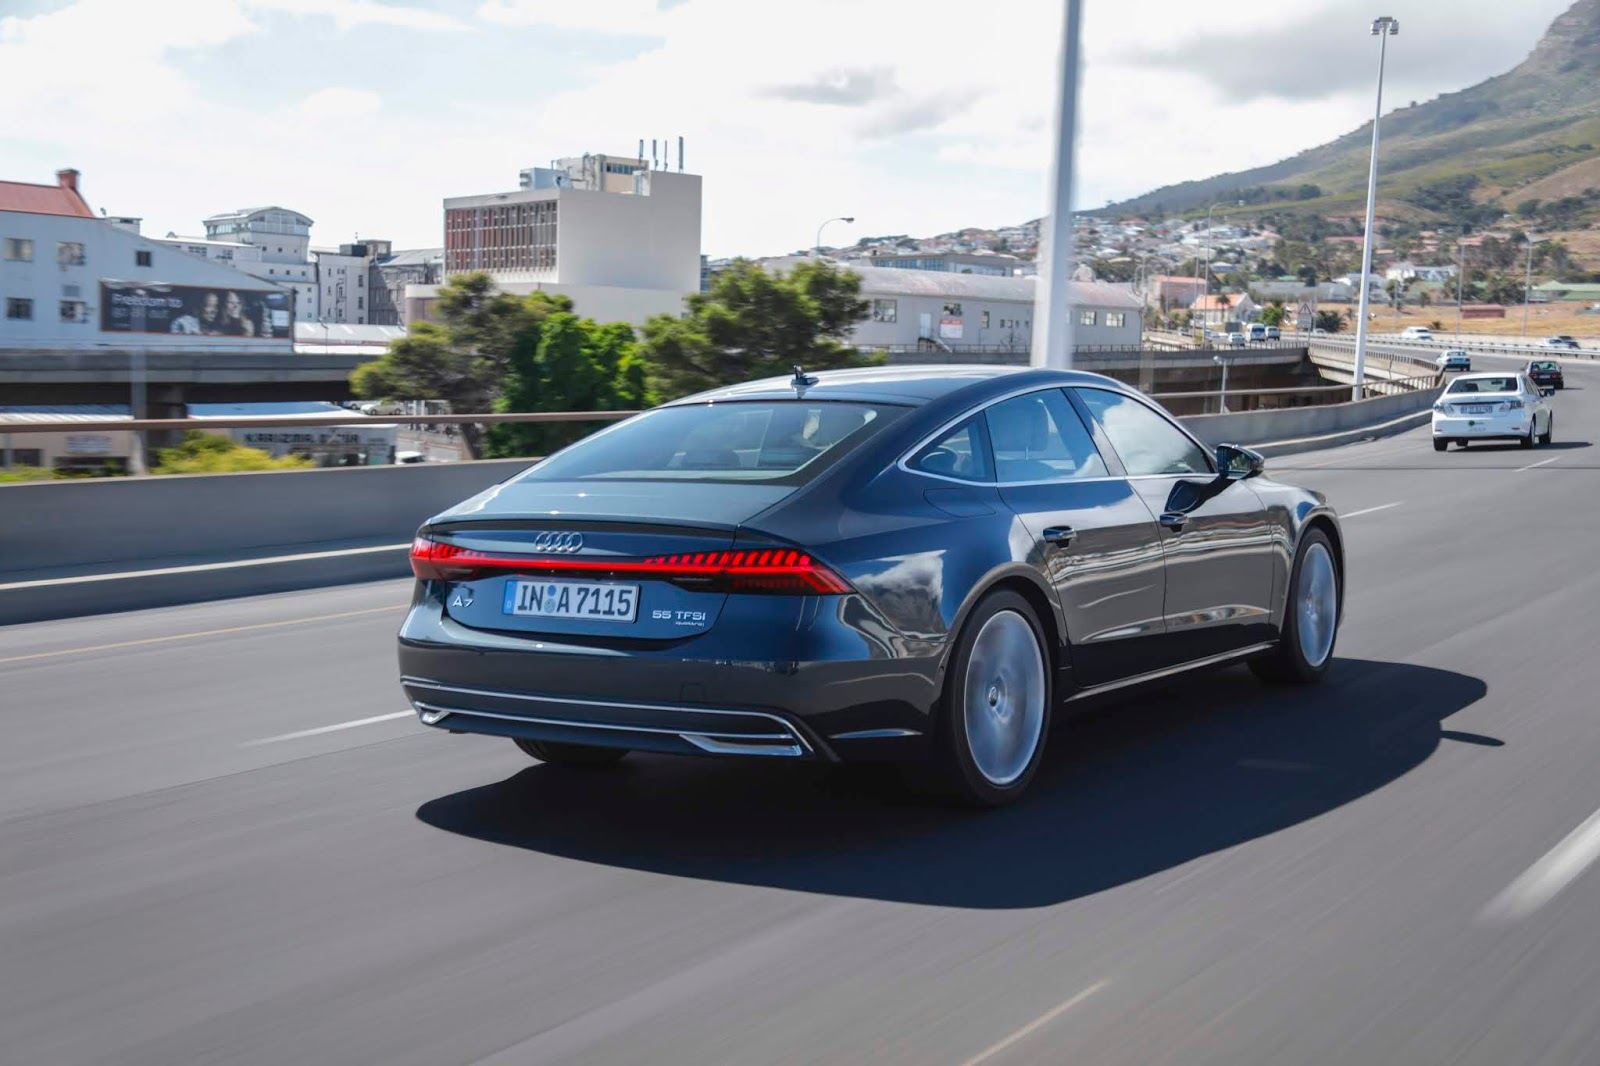 What's New With the 2019 Audi A7?